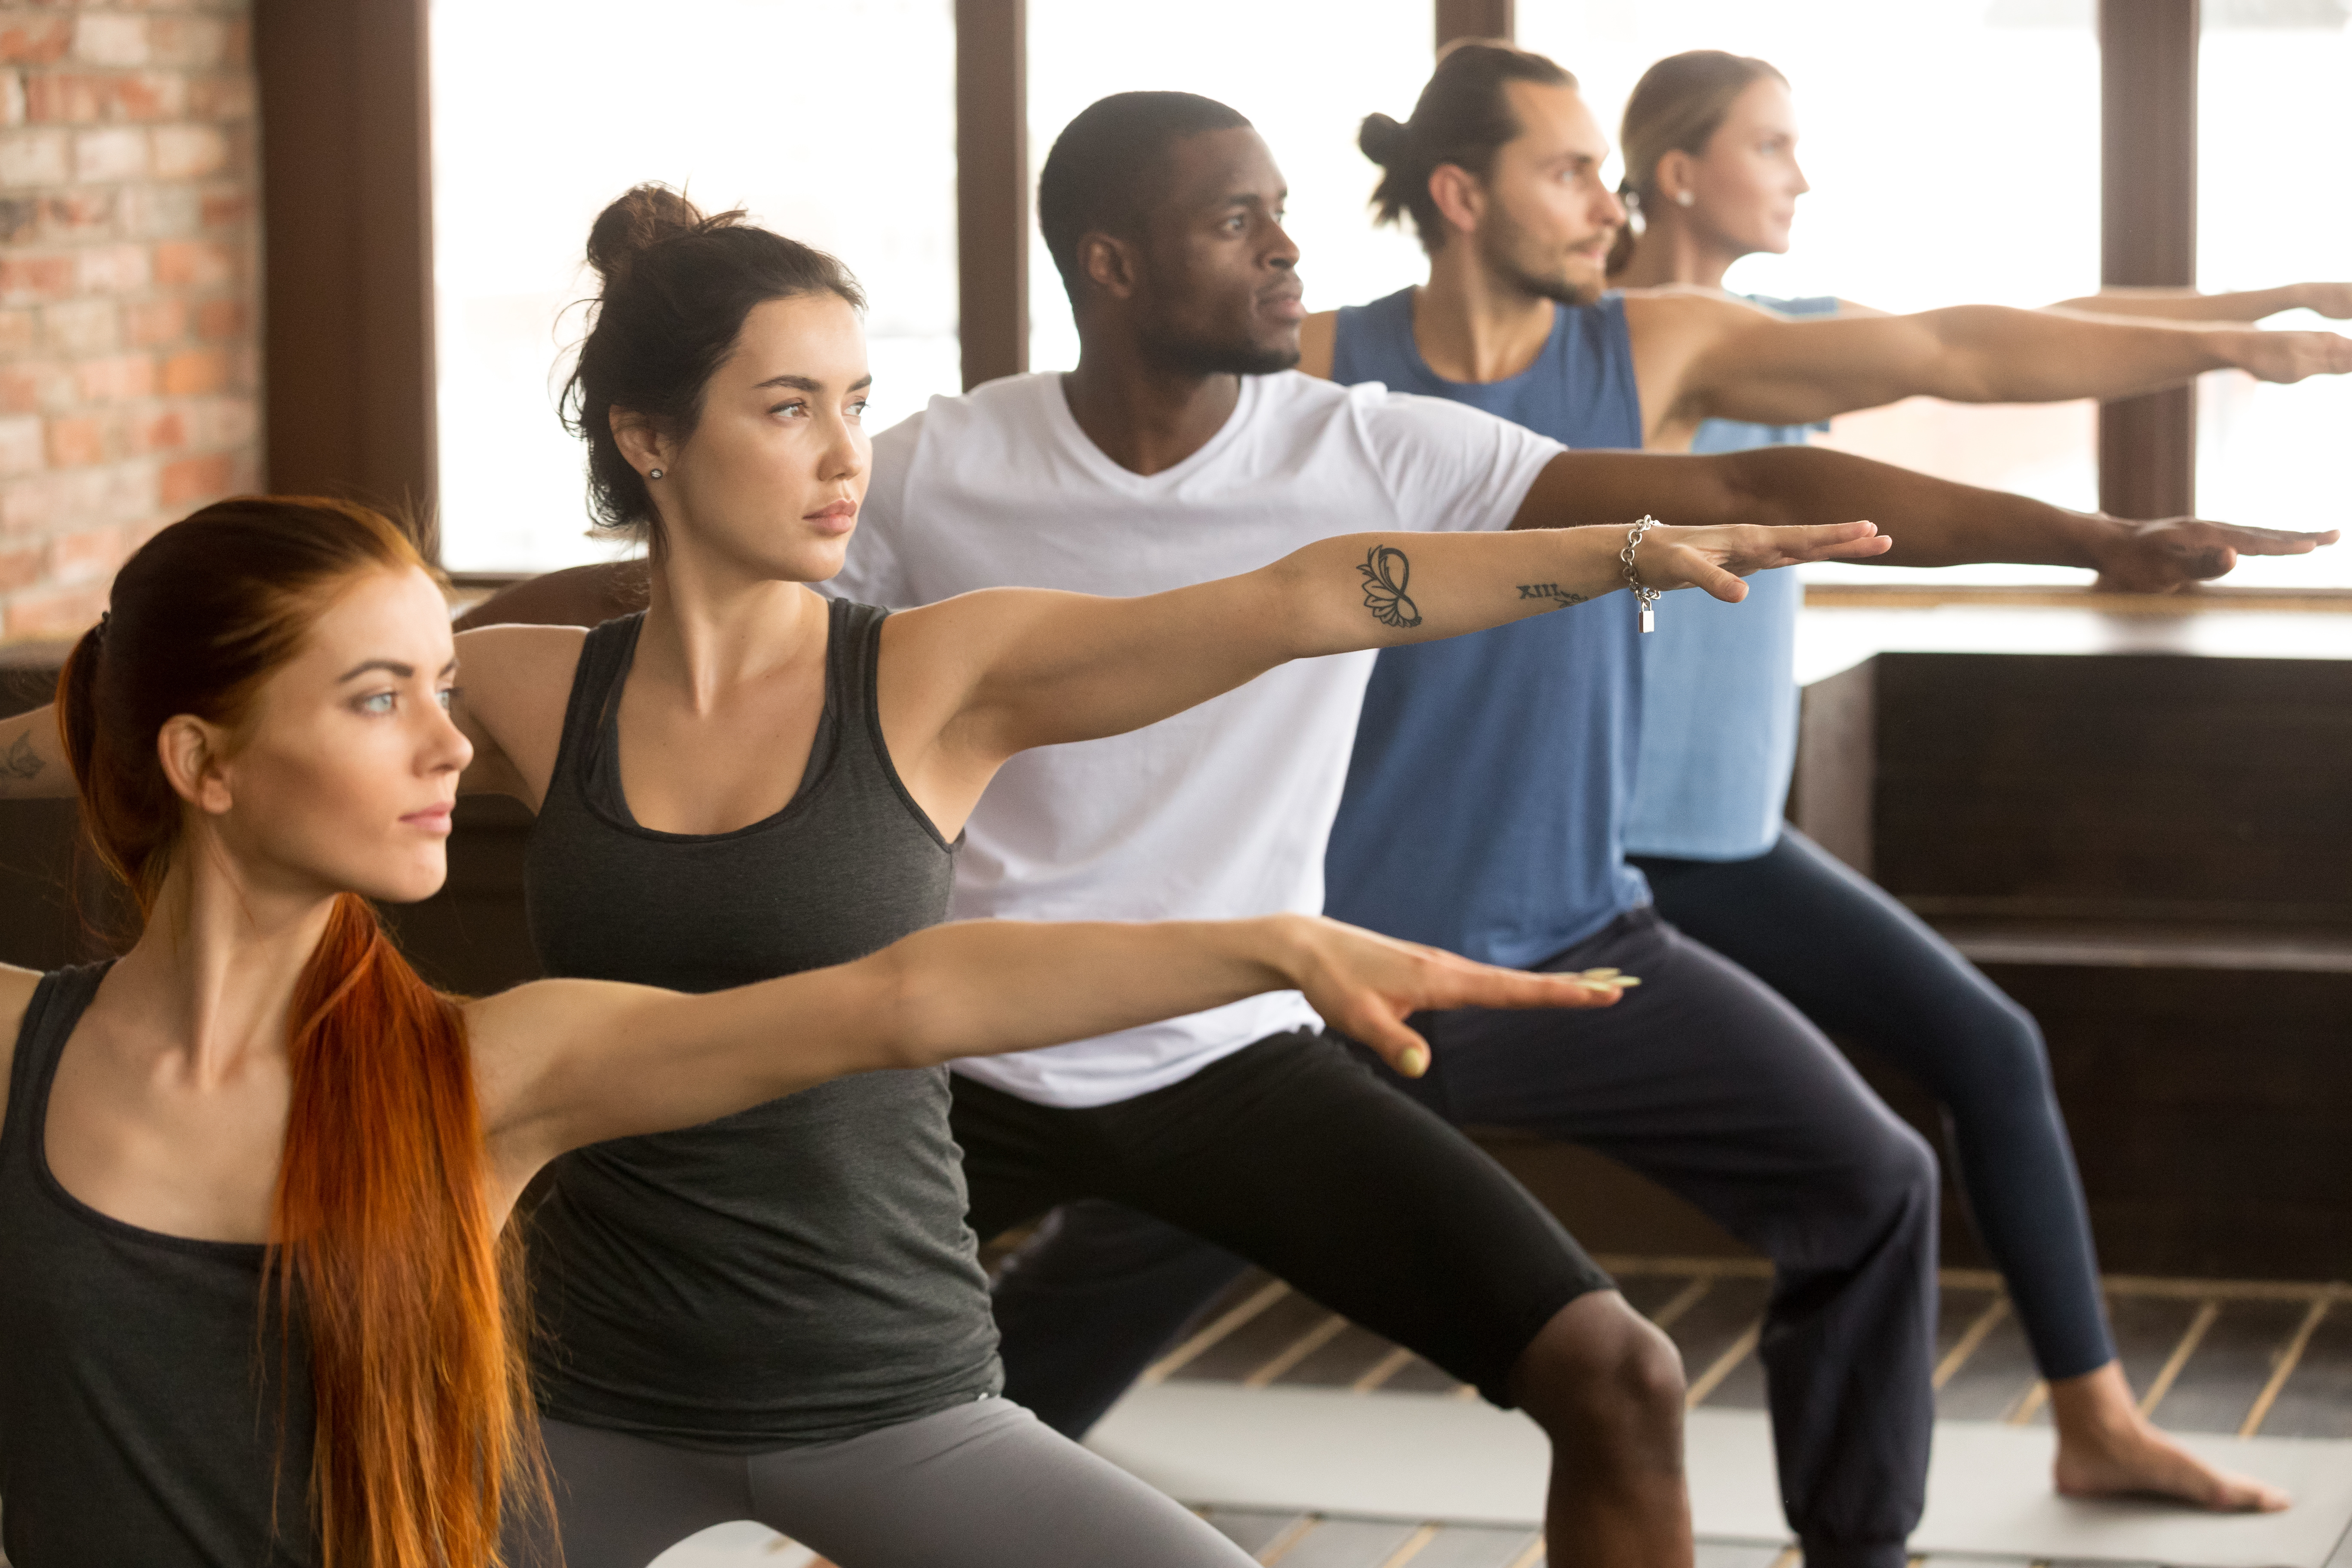 Diversity in yoga classes, weight diversity, gender diversity, racial diversity, cultural diversity in yoga